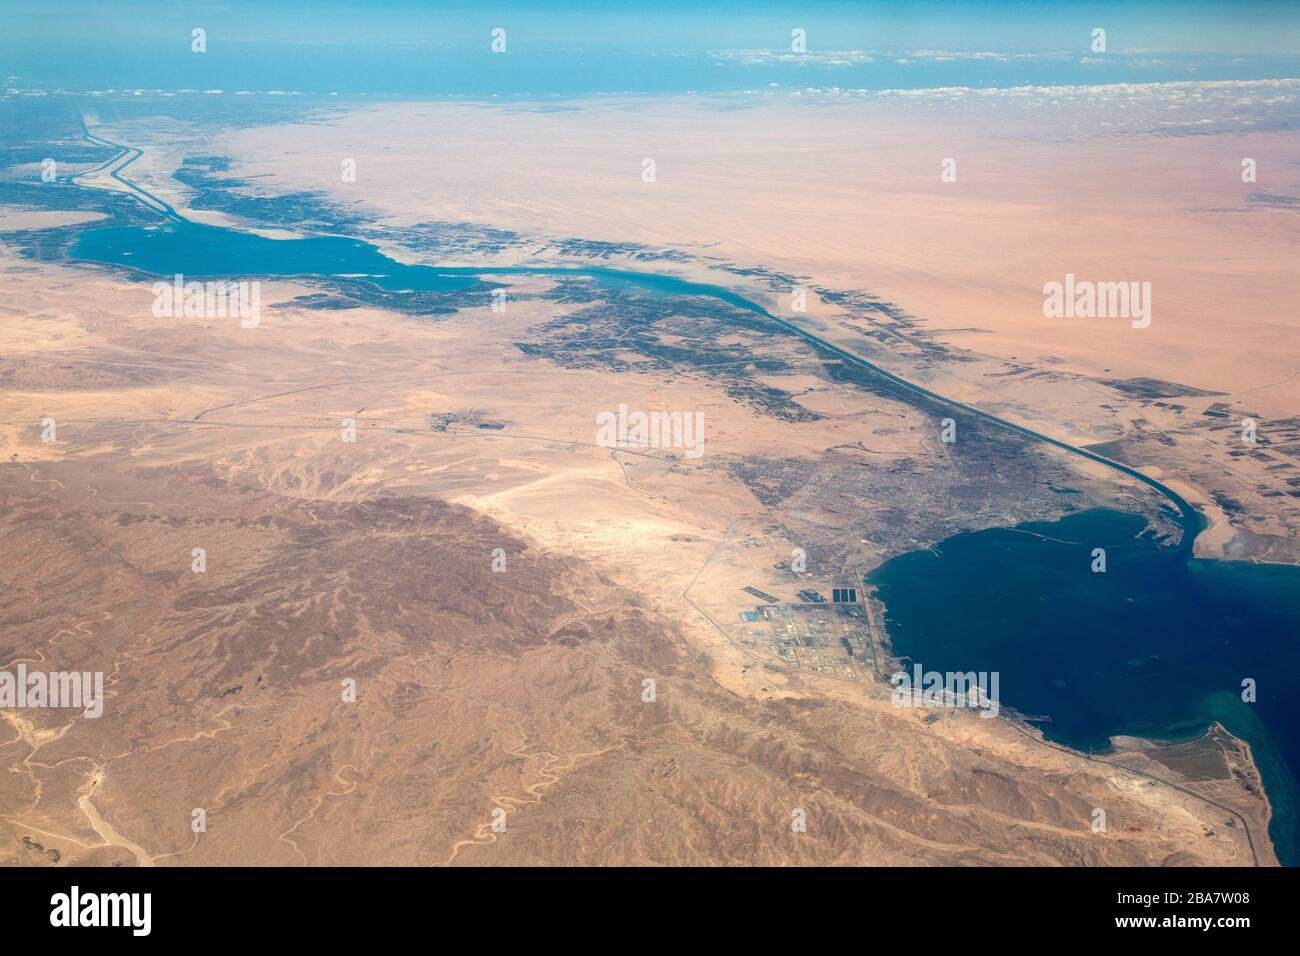 Aerial photograph of the Suez Canal. Stock Photo